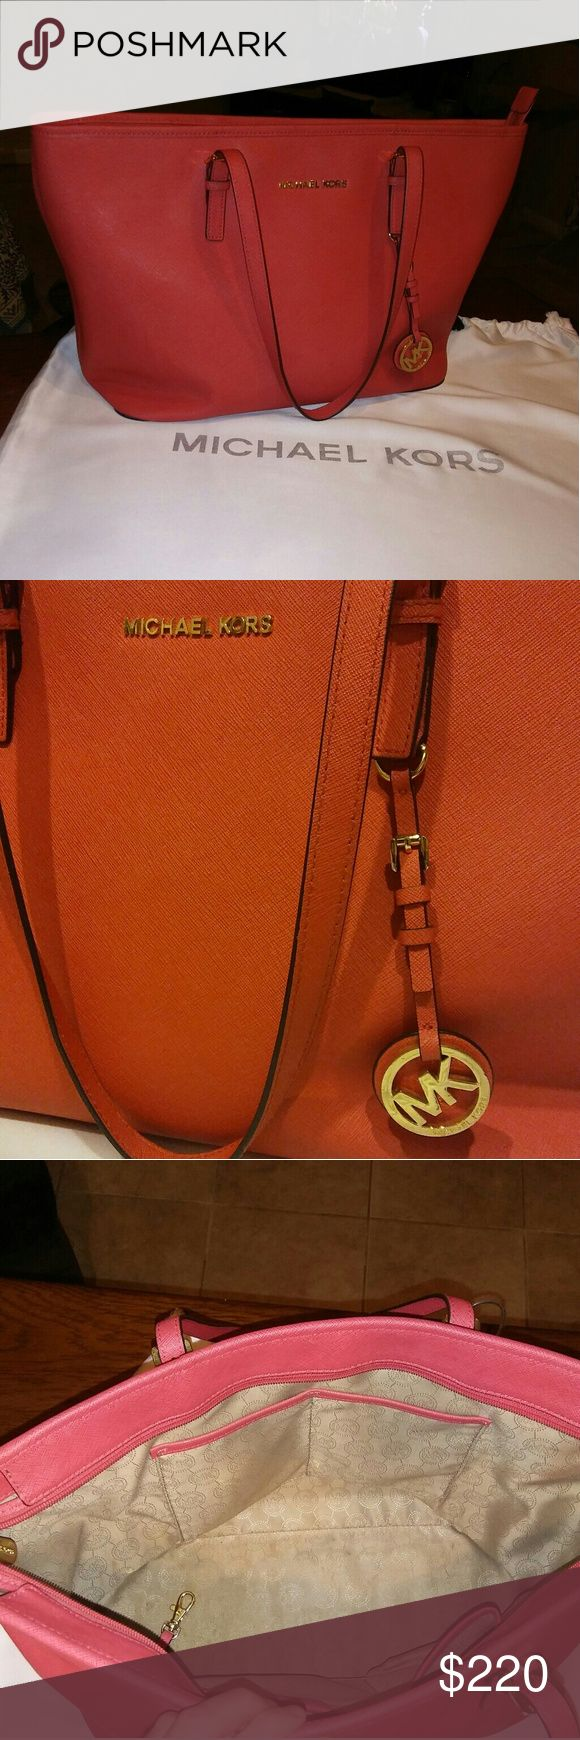 Coral colored Michael Kors shoulder bag Gently used, coral MICHAEL Michael Kors large shoulder bag. 5 interior pockets. Minor discoloration on the back due to storage (barely visible but pictured above) and small pen markings on interior pocket (also pictured above). Dust bag included. MICHAEL Michael Kors Bags Totes